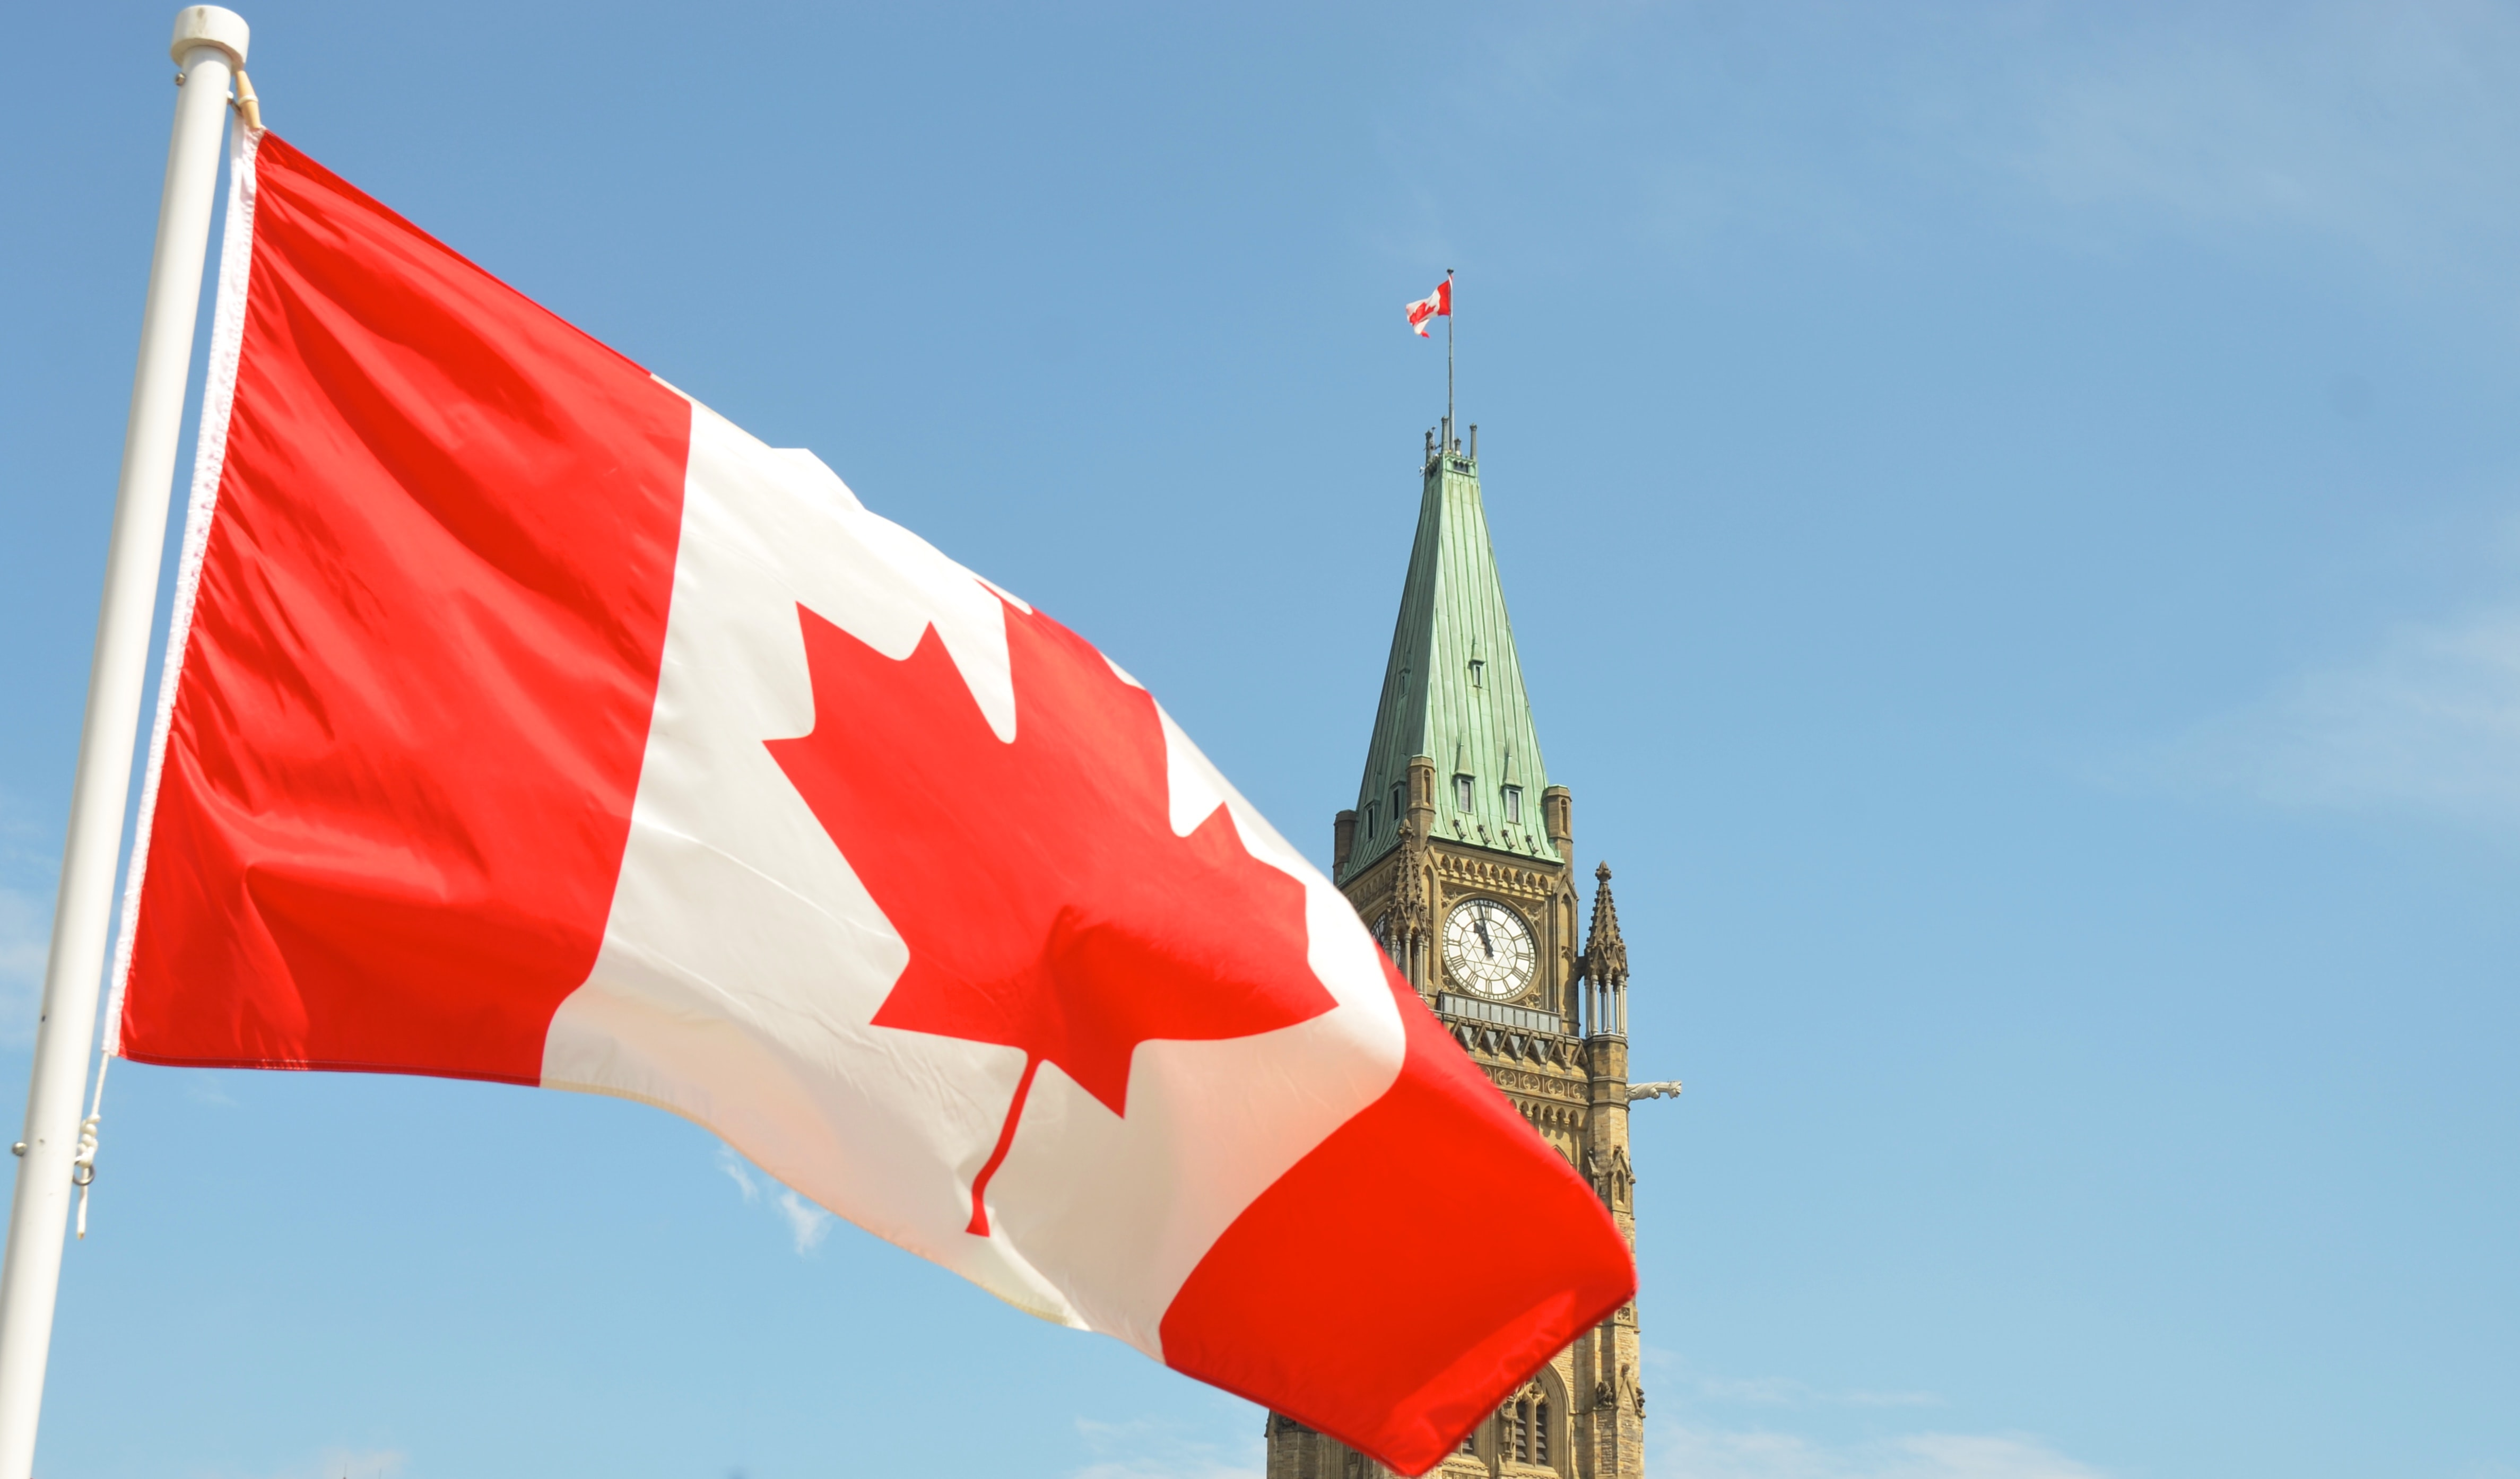 Canadian flag waving in front of the Parliament buildings in Ottawa.